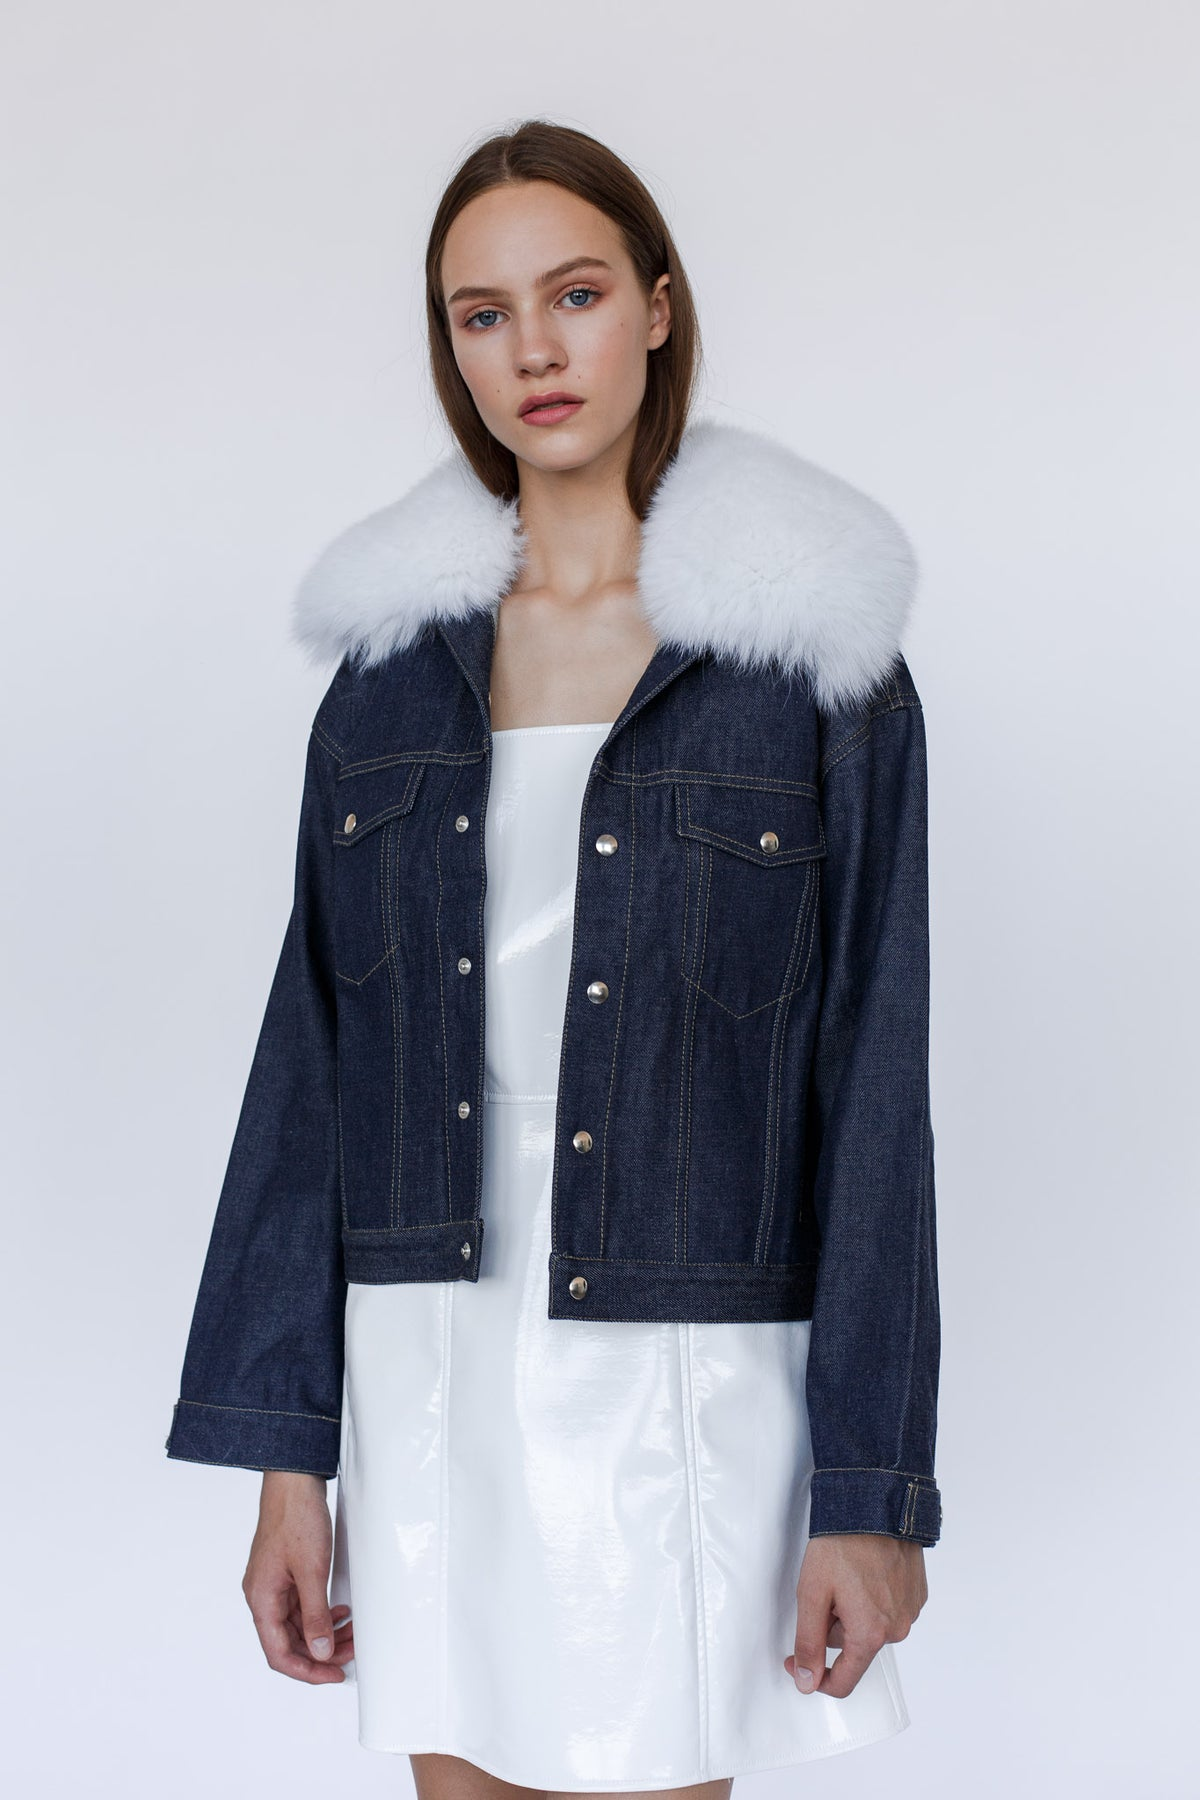 GENES | Blue denim jacket with attachable white fox fur collar